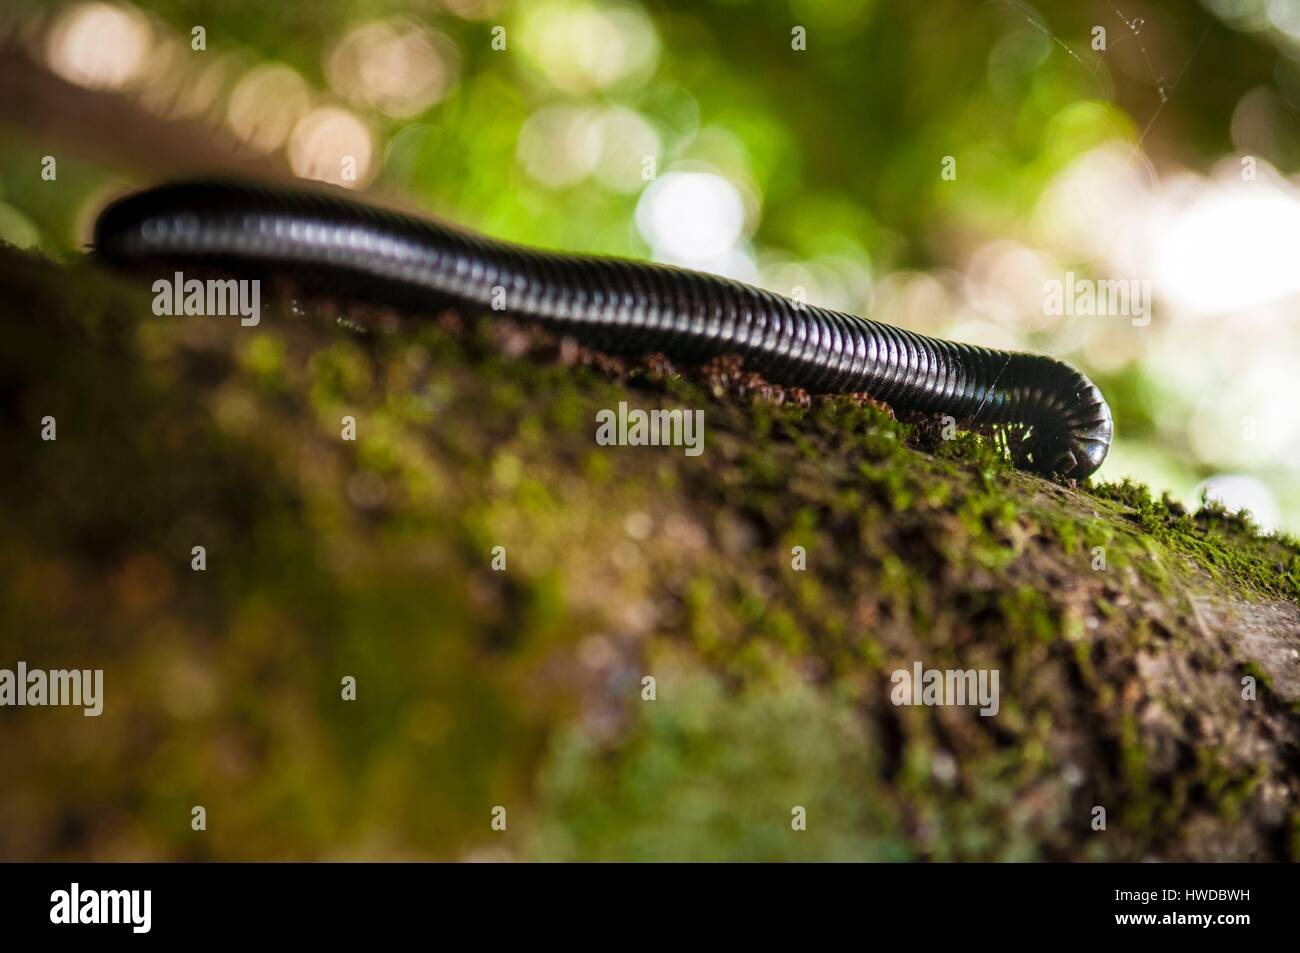 Centipedes Stock Photos & Centipedes Stock Images - Alamy